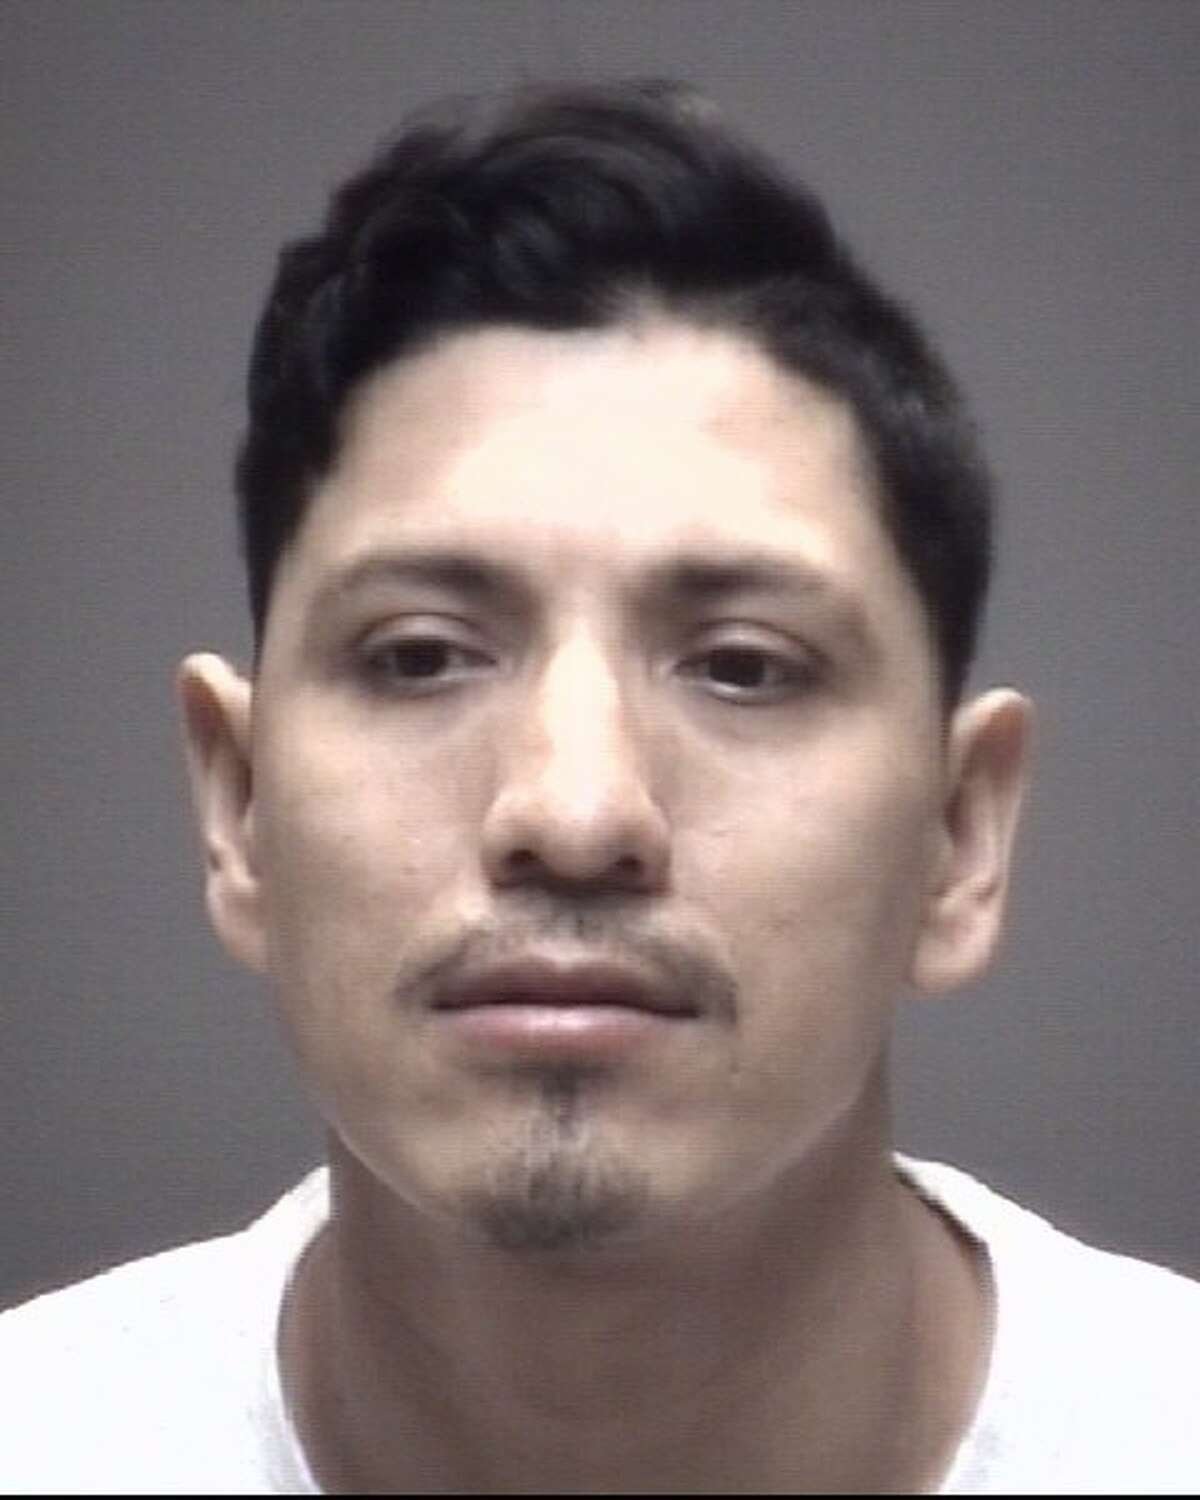 Eloy Aguirre was charged with failing to comply with sex offender registry requirements.